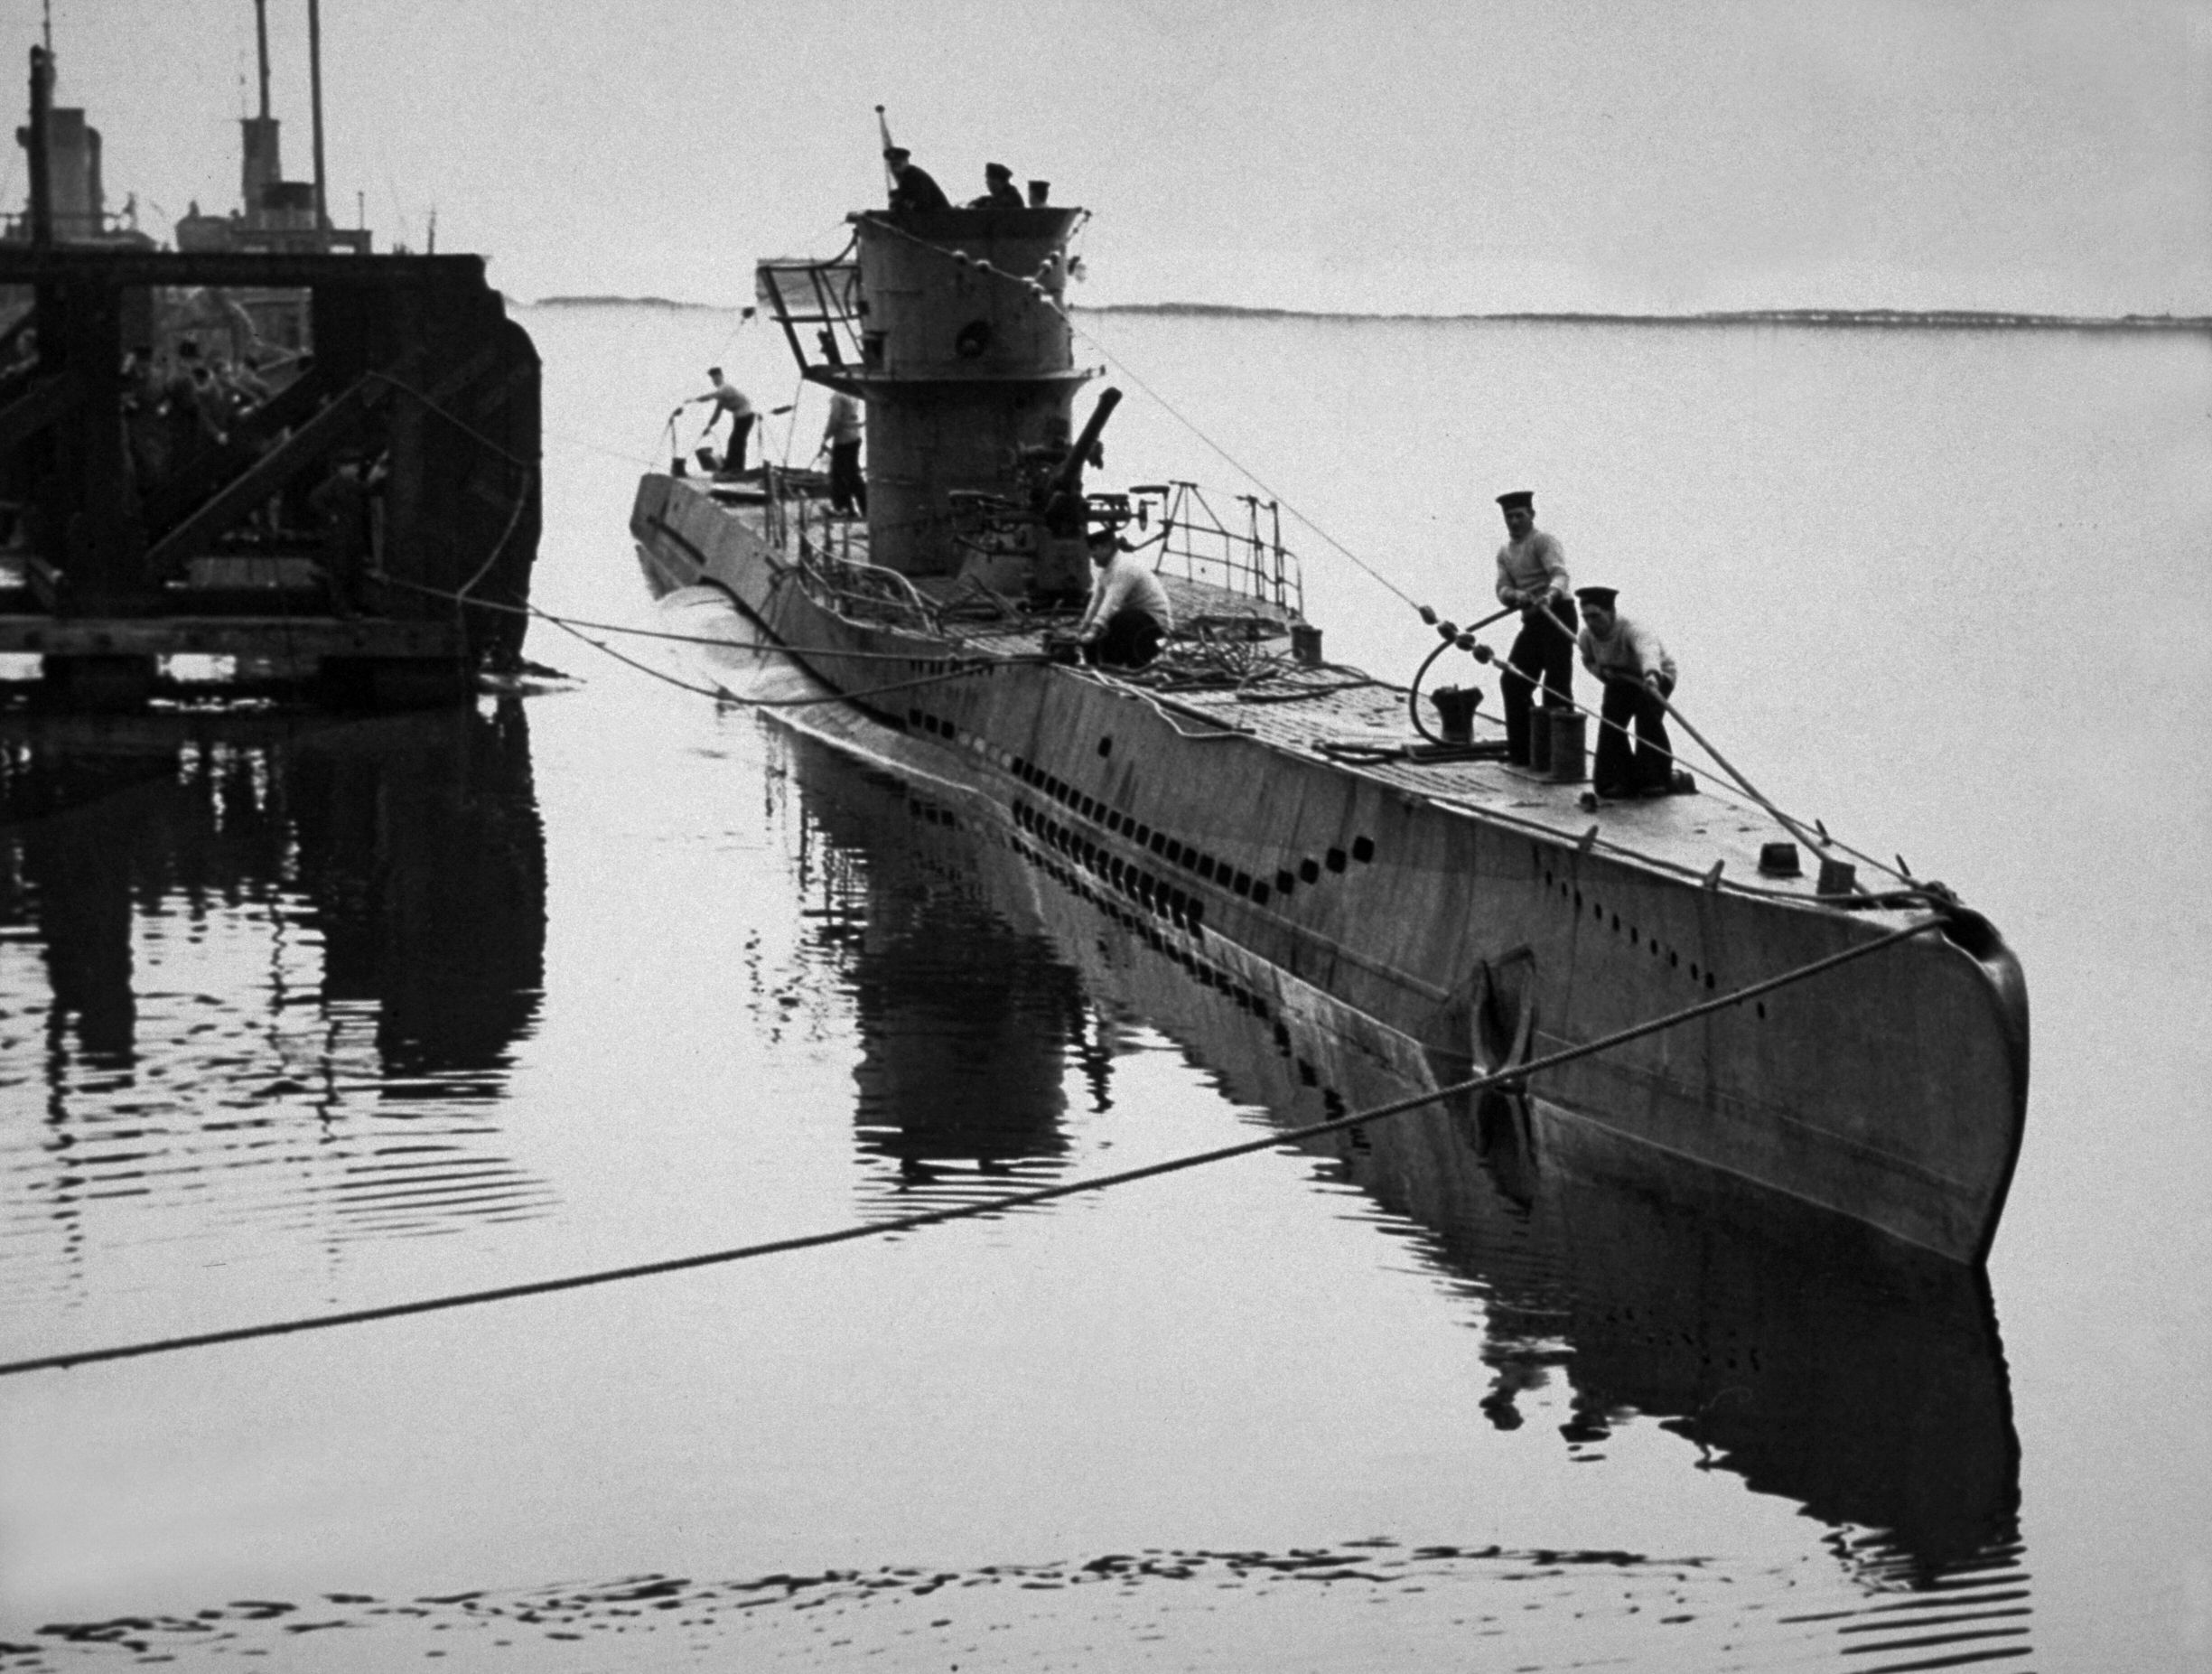 Submarine At Center Of South America Nazi Conspiracy Theories Finally Found In Denmark